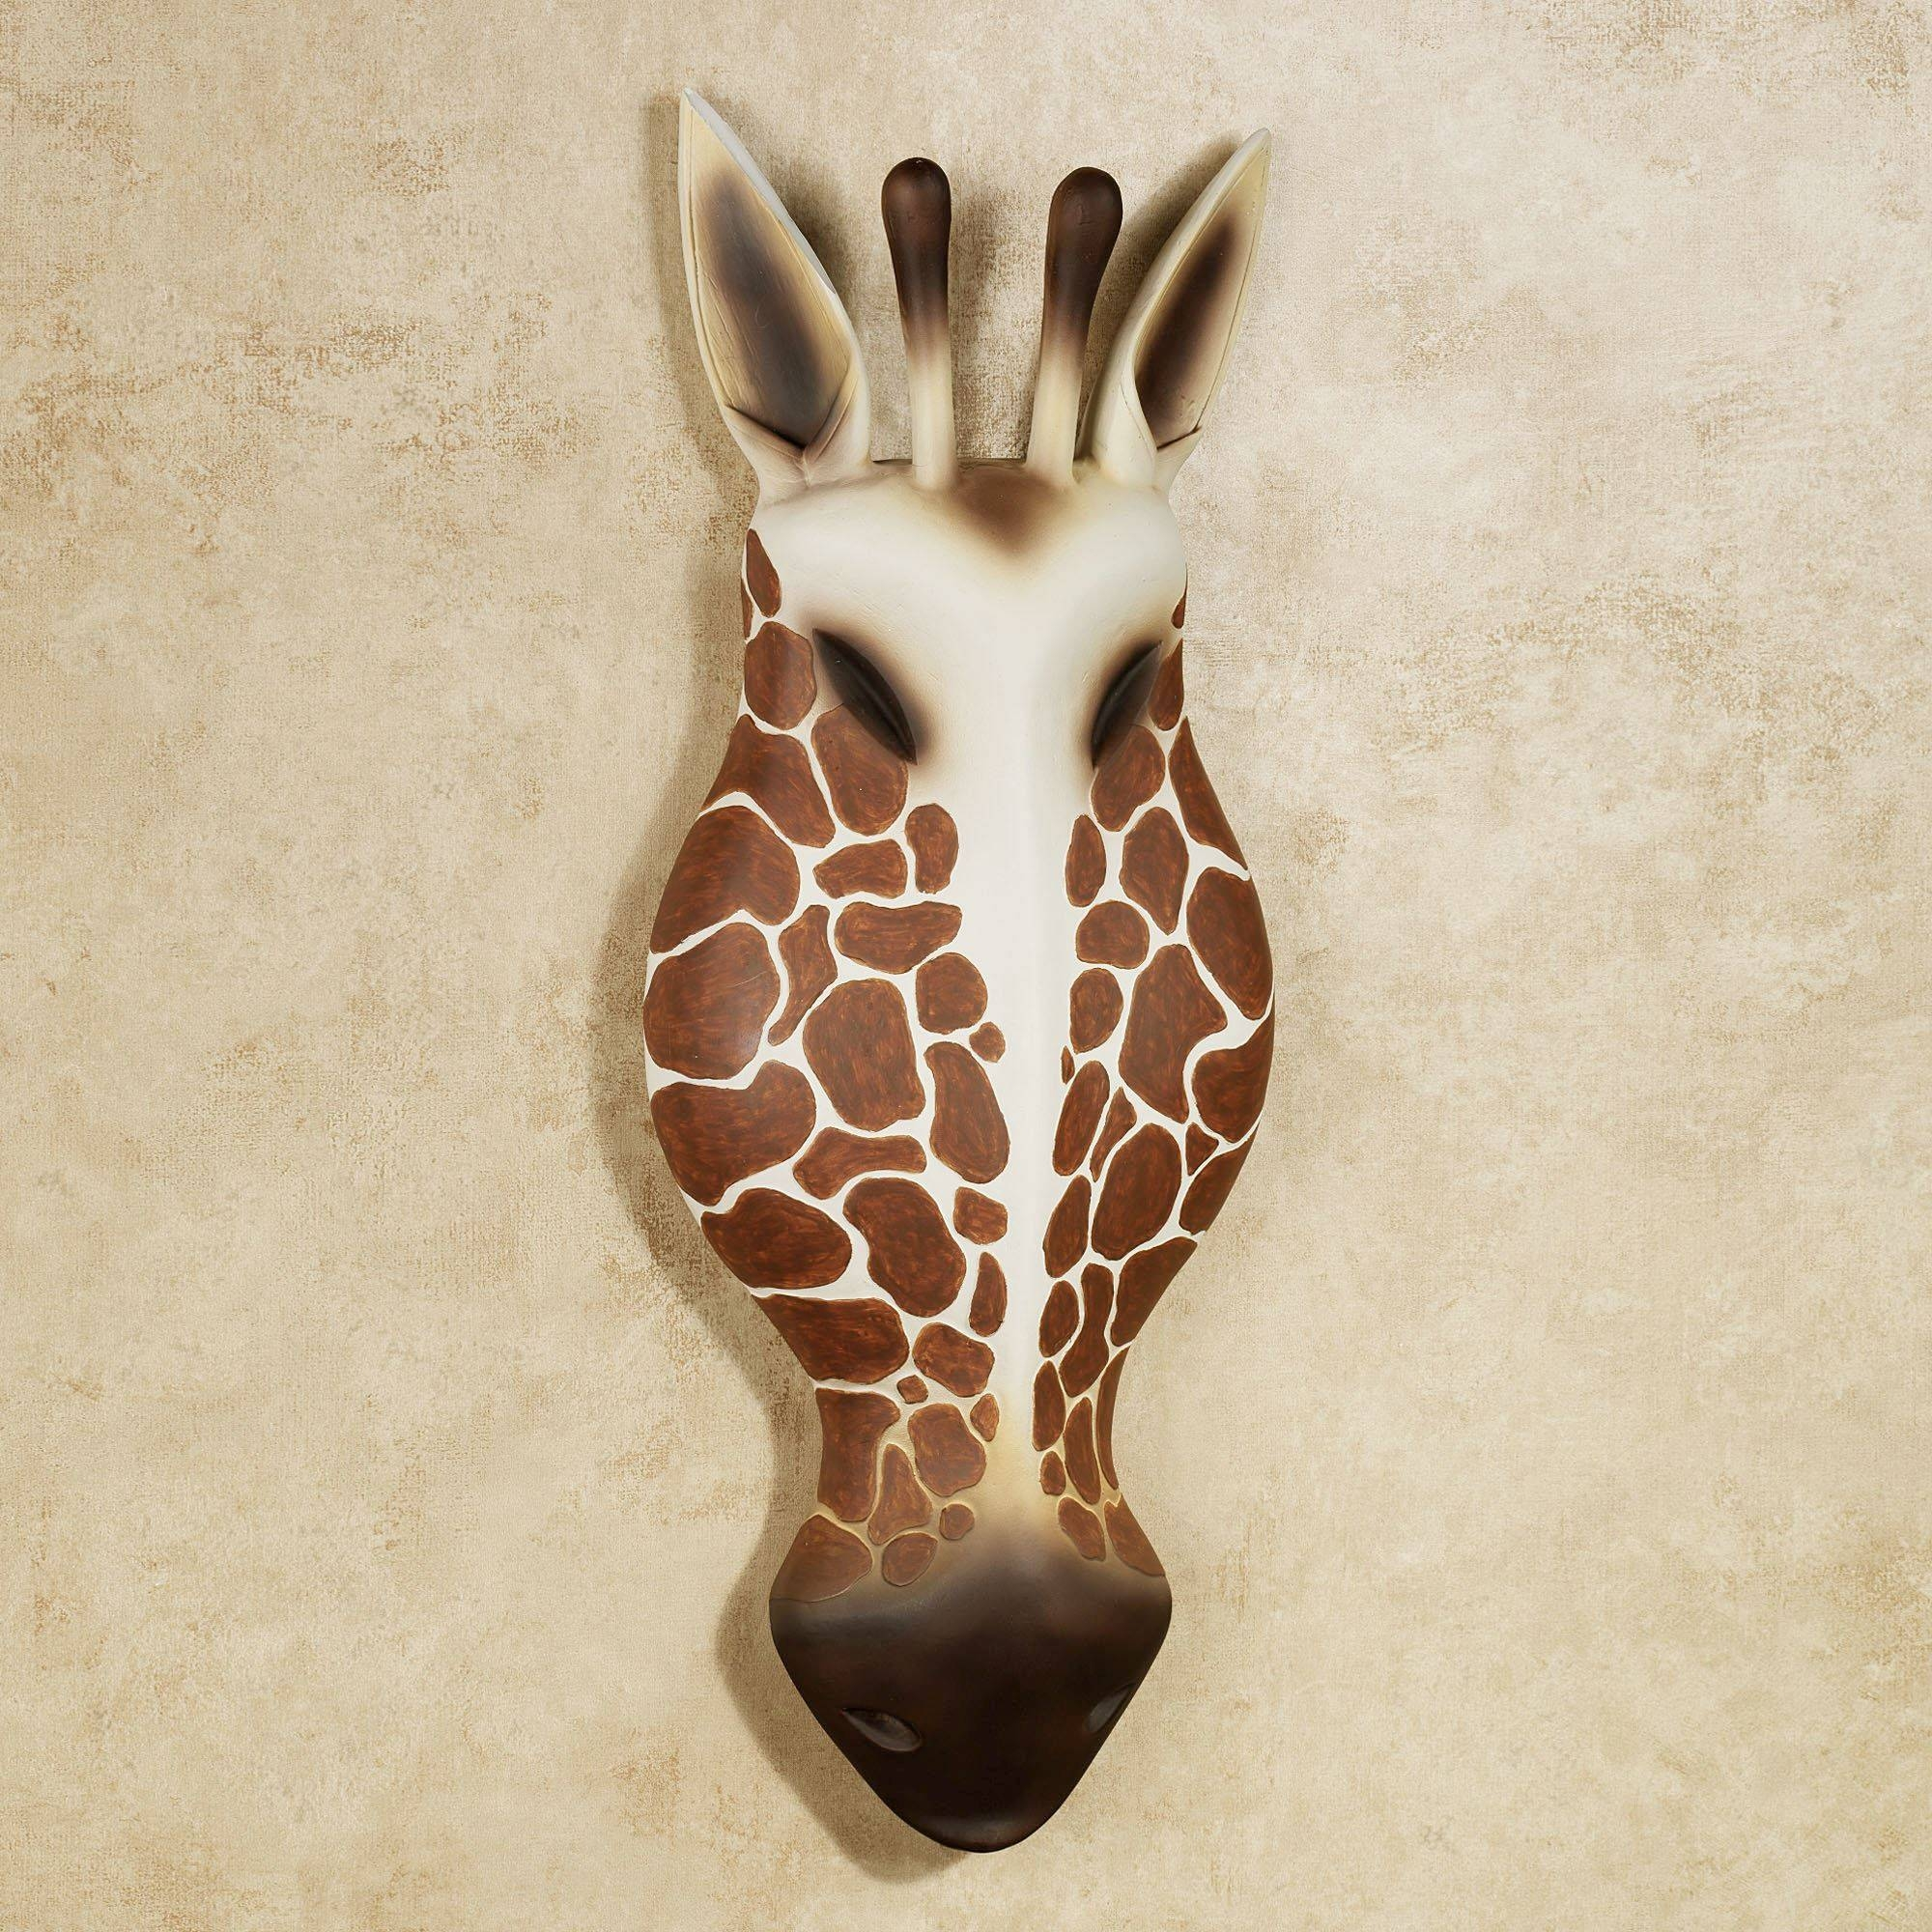 Resin Giraffe Head Wall Art Intended For Latest Giraffe Metal Wall Art (View 15 of 20)